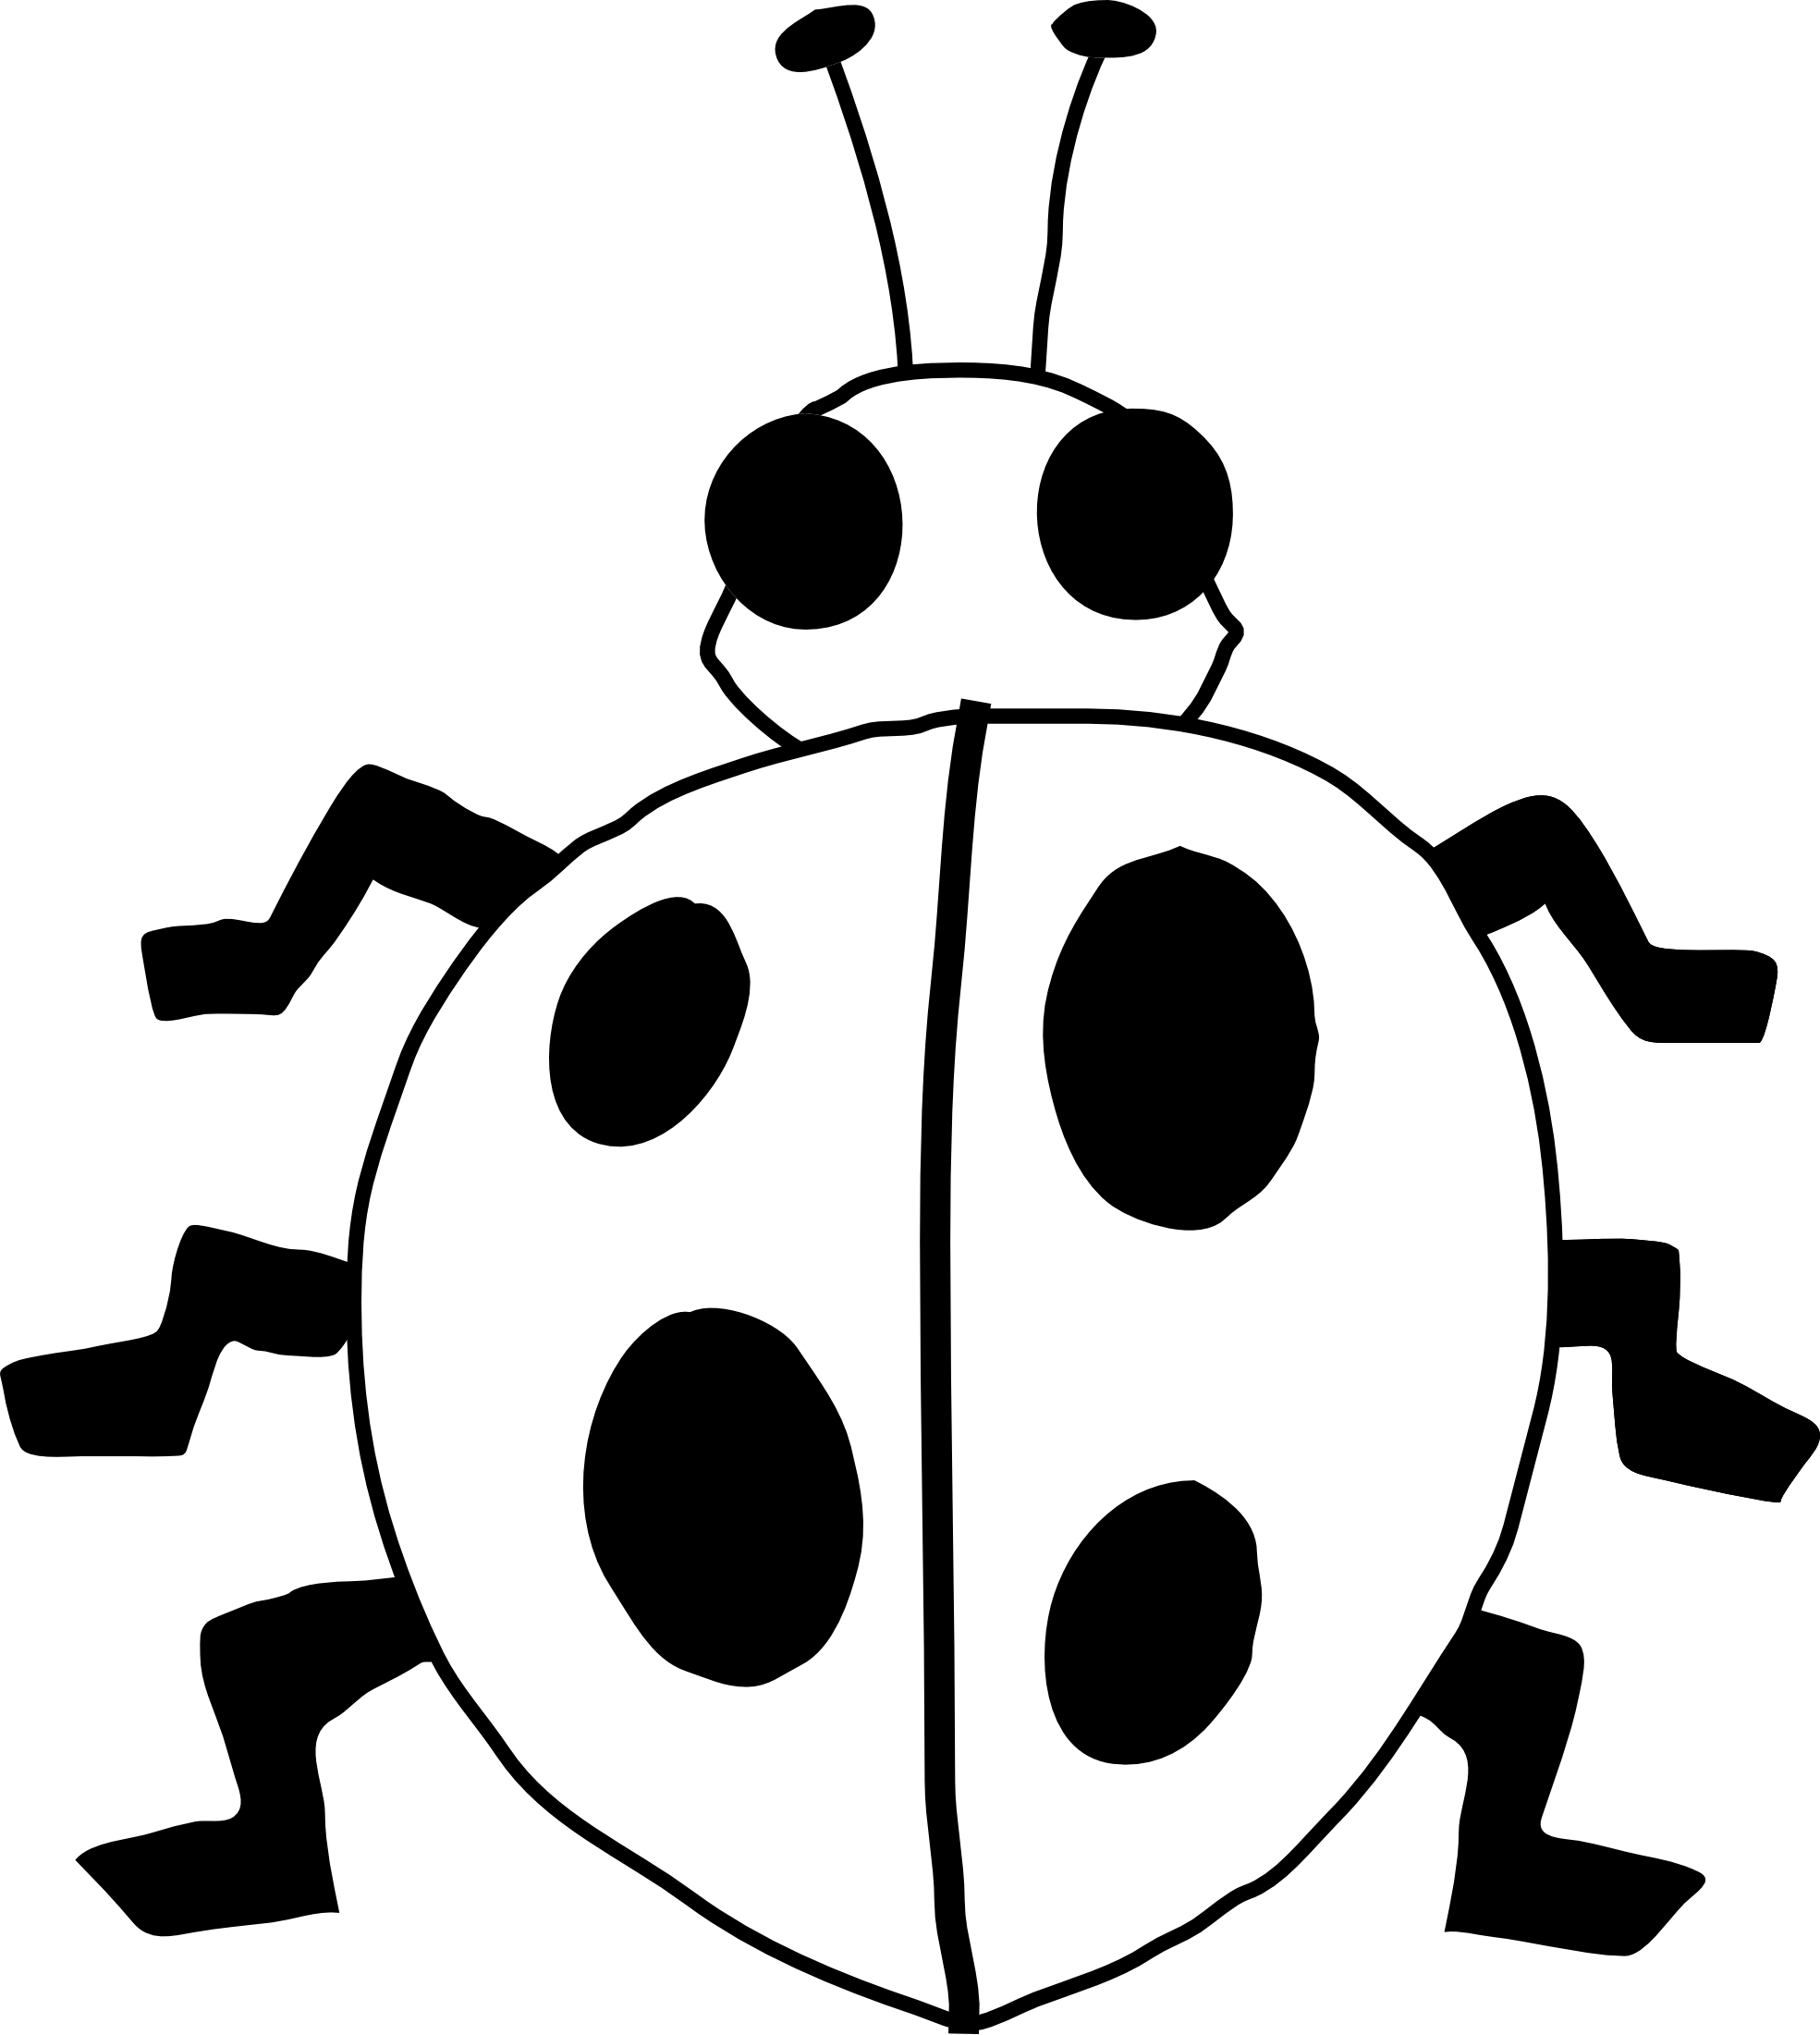 Squid black and white. Ladybug clipart border